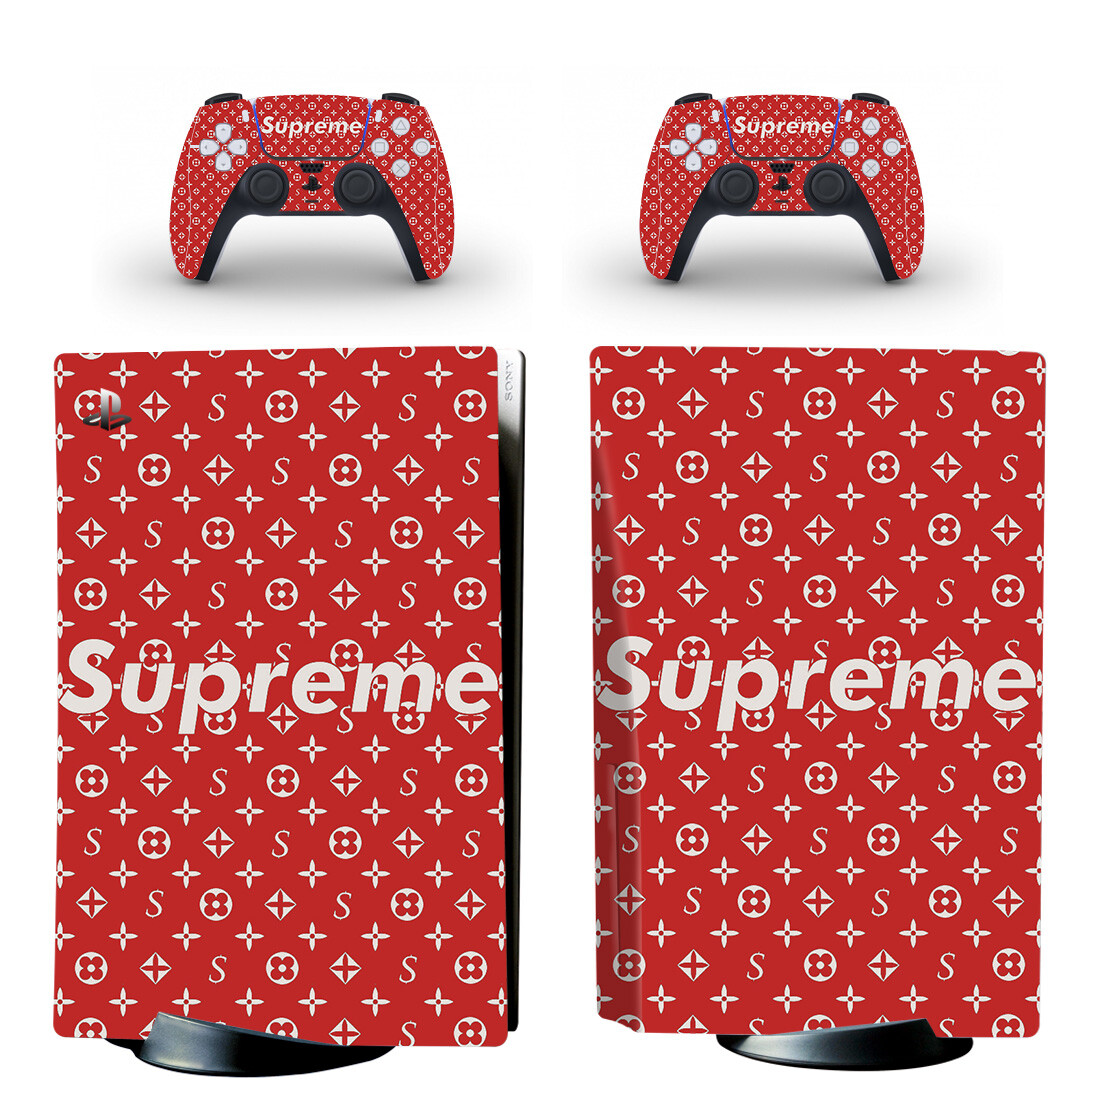 Supreme Skin Sticker For PS5 Skin And Controllers Design 1